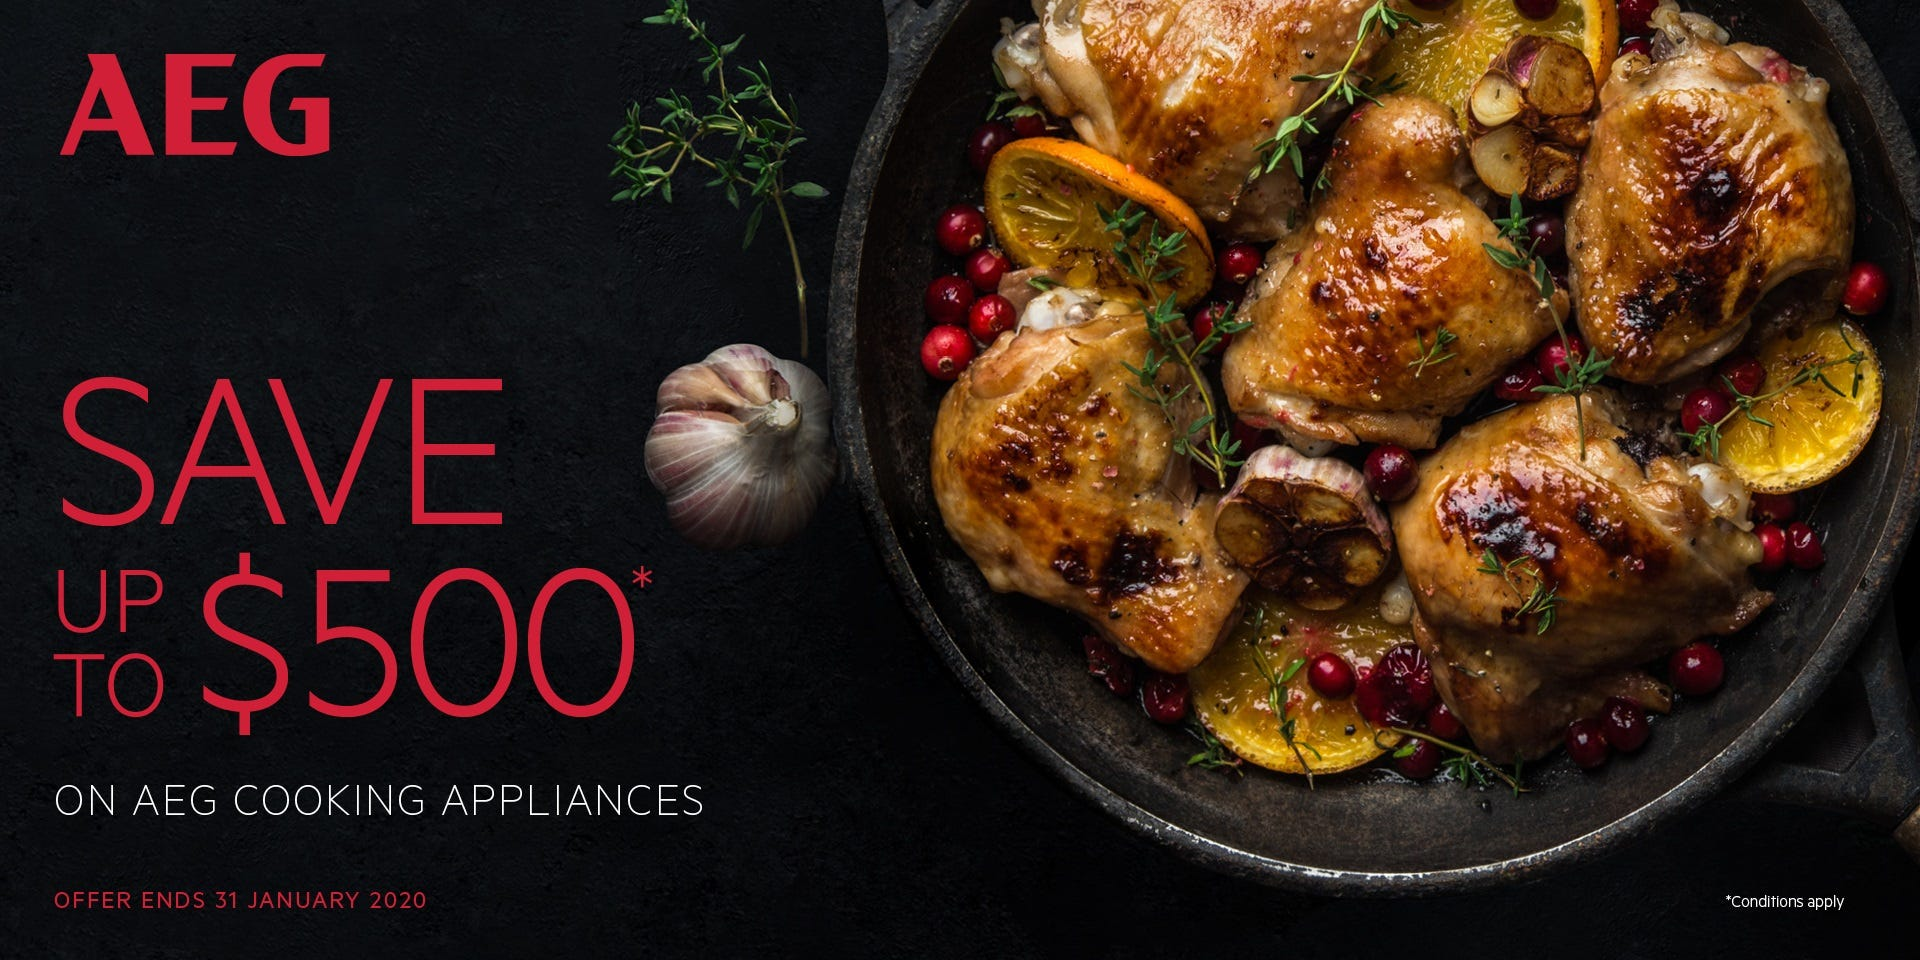 Save up to $300 on AEG Cooking appliances. Buy as a package and save a further 10%. Conditions apply - ENDS 31/01/20